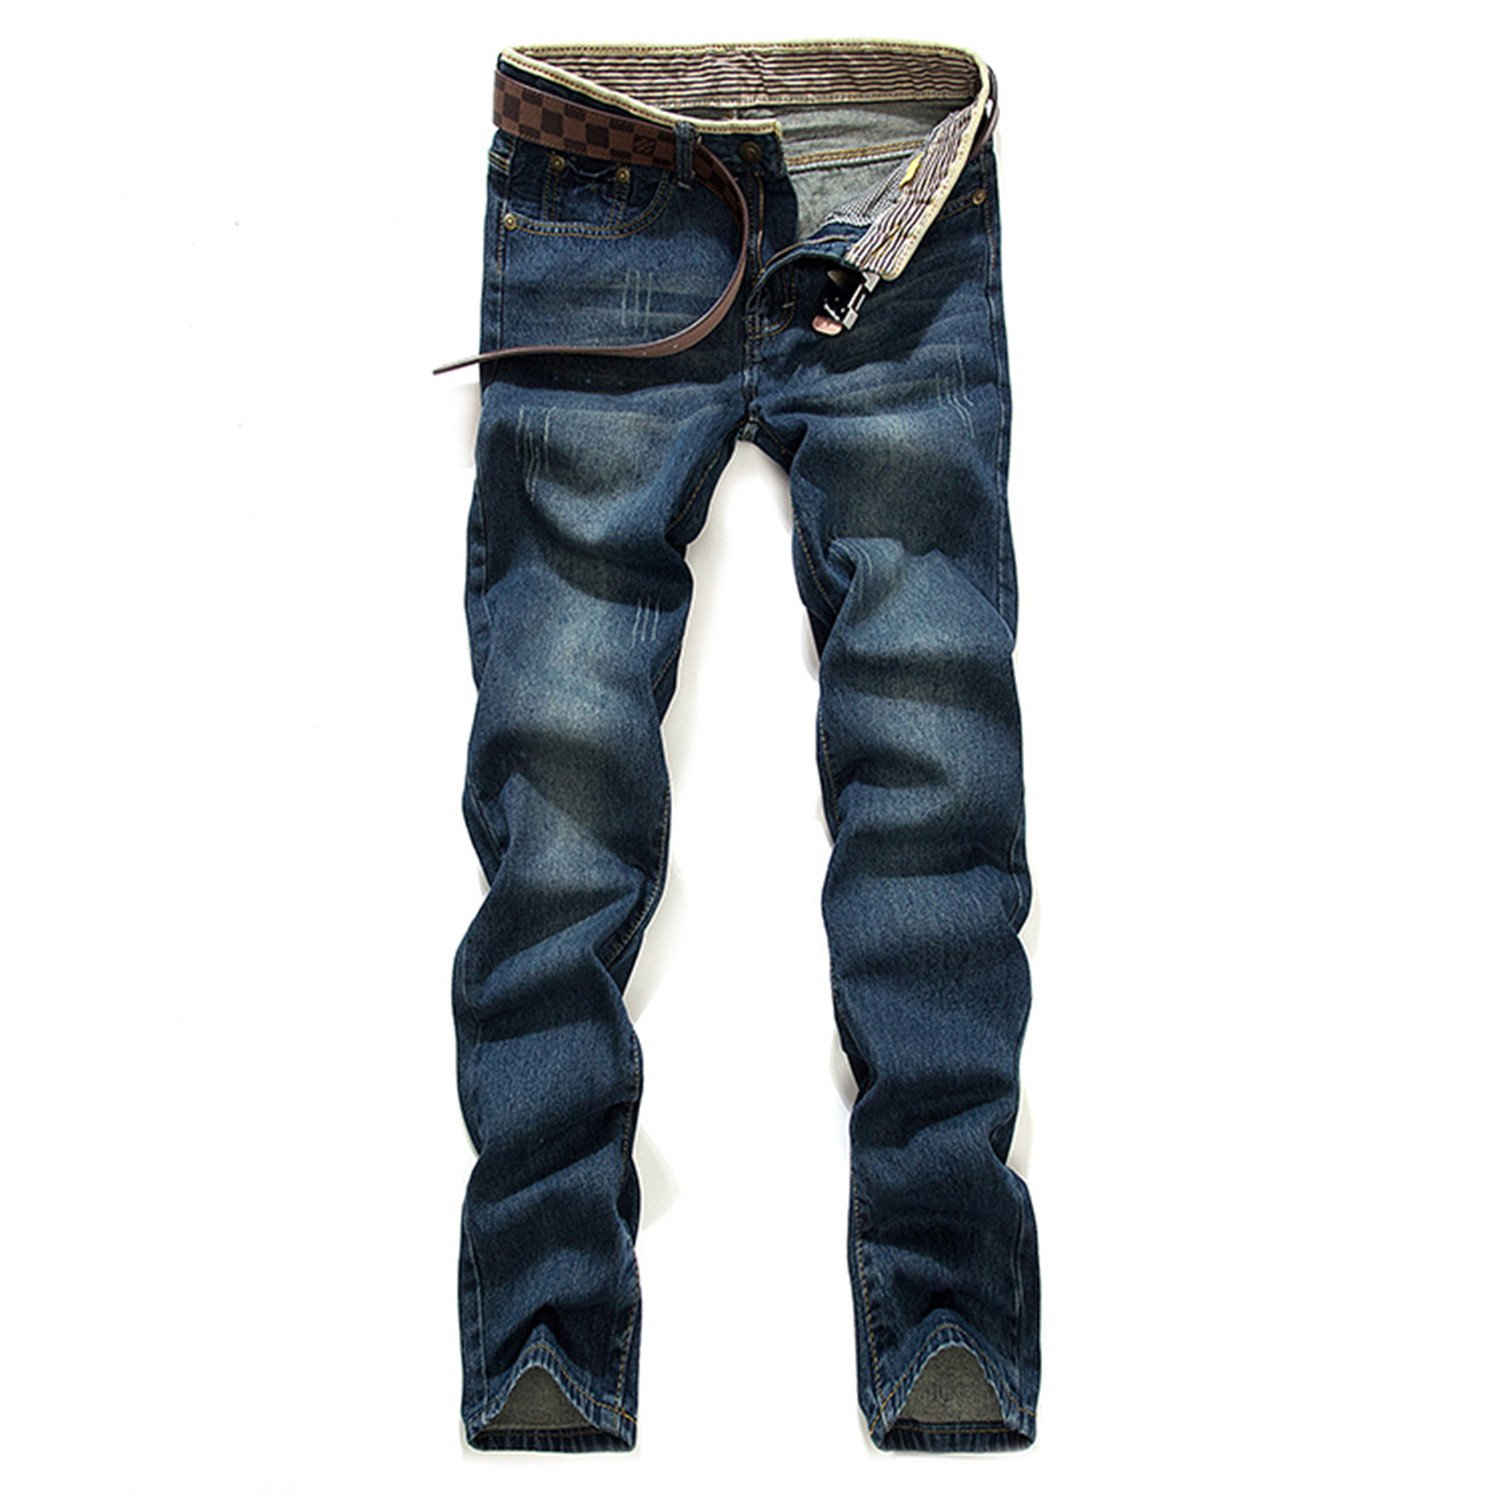 Phillip Dudley New 2018 Male Fine Cotton Fashion Leisure Blue Jeans Male Straight High-Grade Quality Casual Jeans Mens Pants